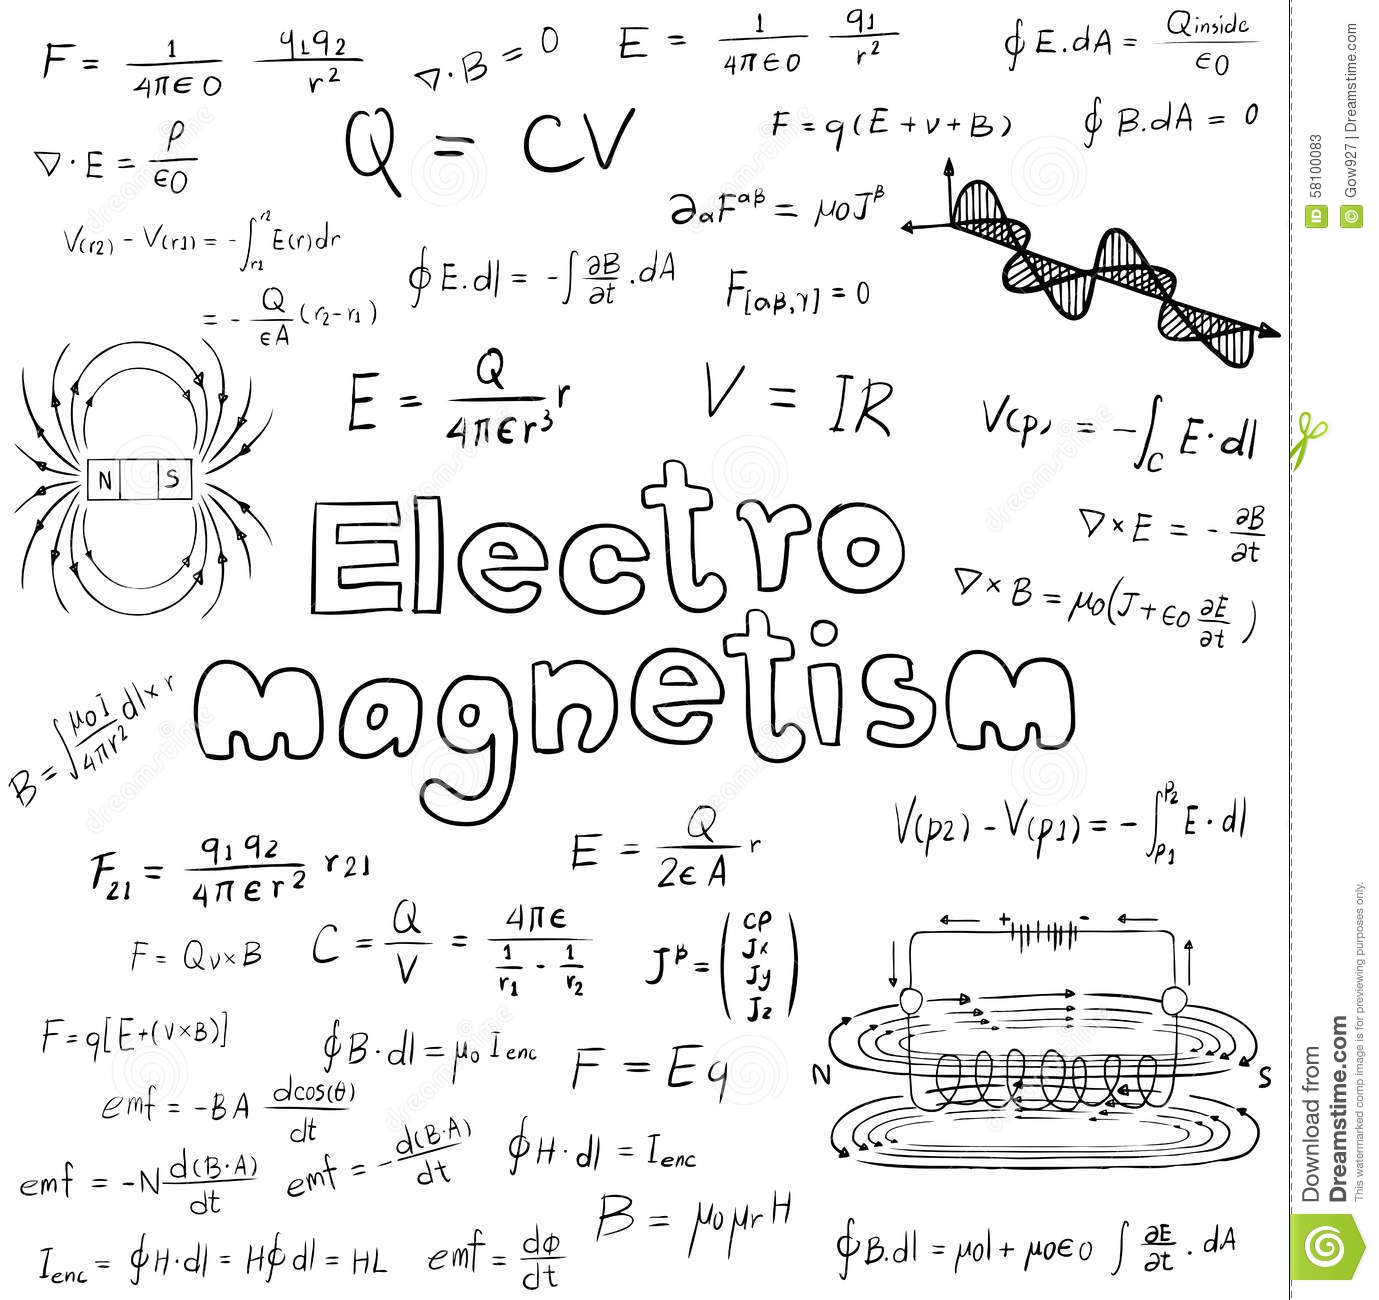 Electromagnetism Electric Magnetic Law Theory And Physics